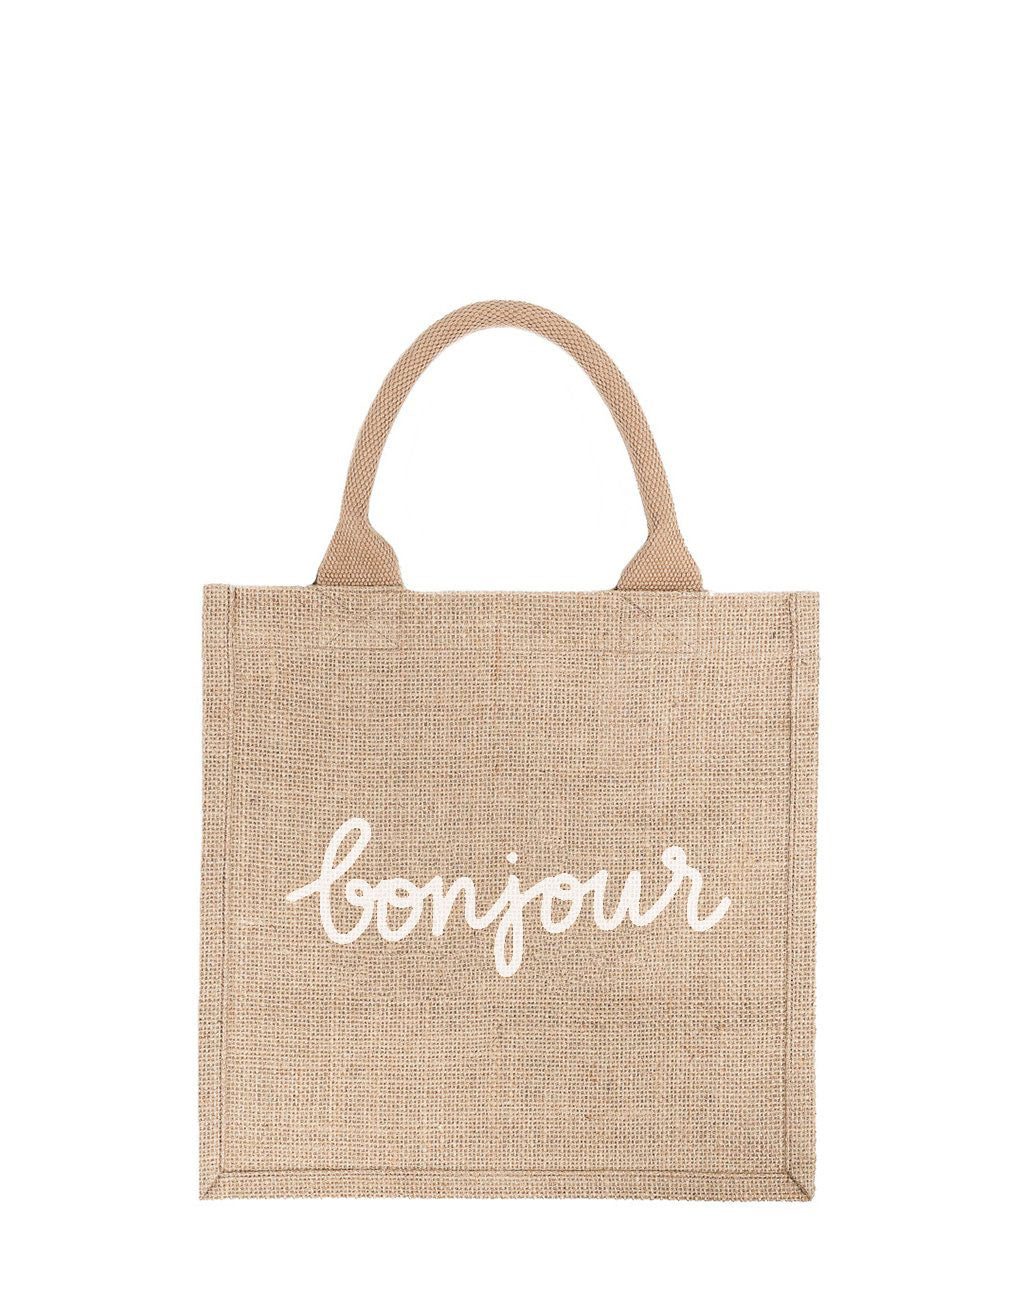 Large Bonjour Reusable Gift Tote In White Font | The Little Market